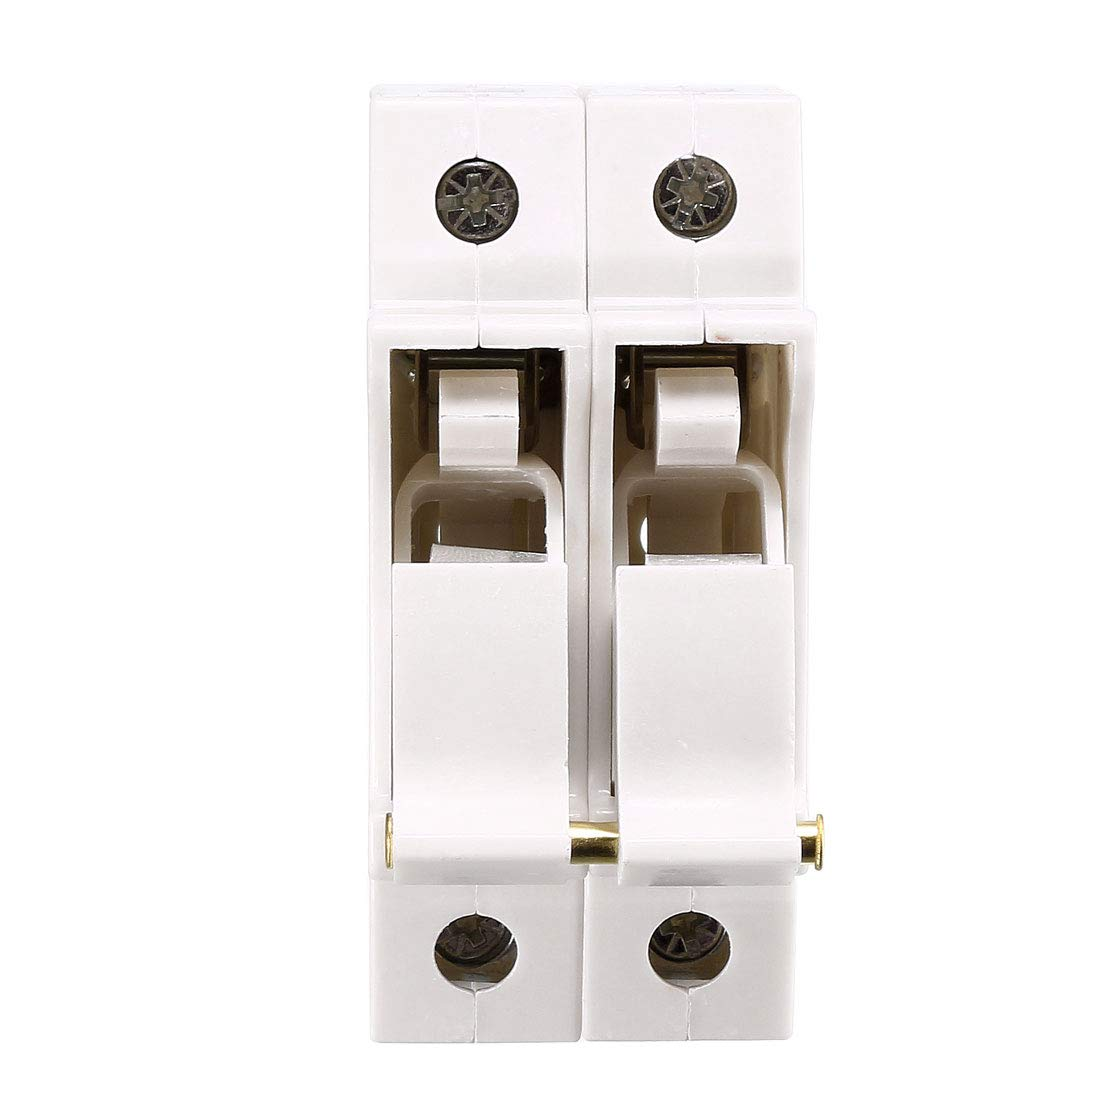 uxcell DIN Rail Mount Fuse Holder 3 Pole RT18-32 10mmx38mm with Indicator Light Gray